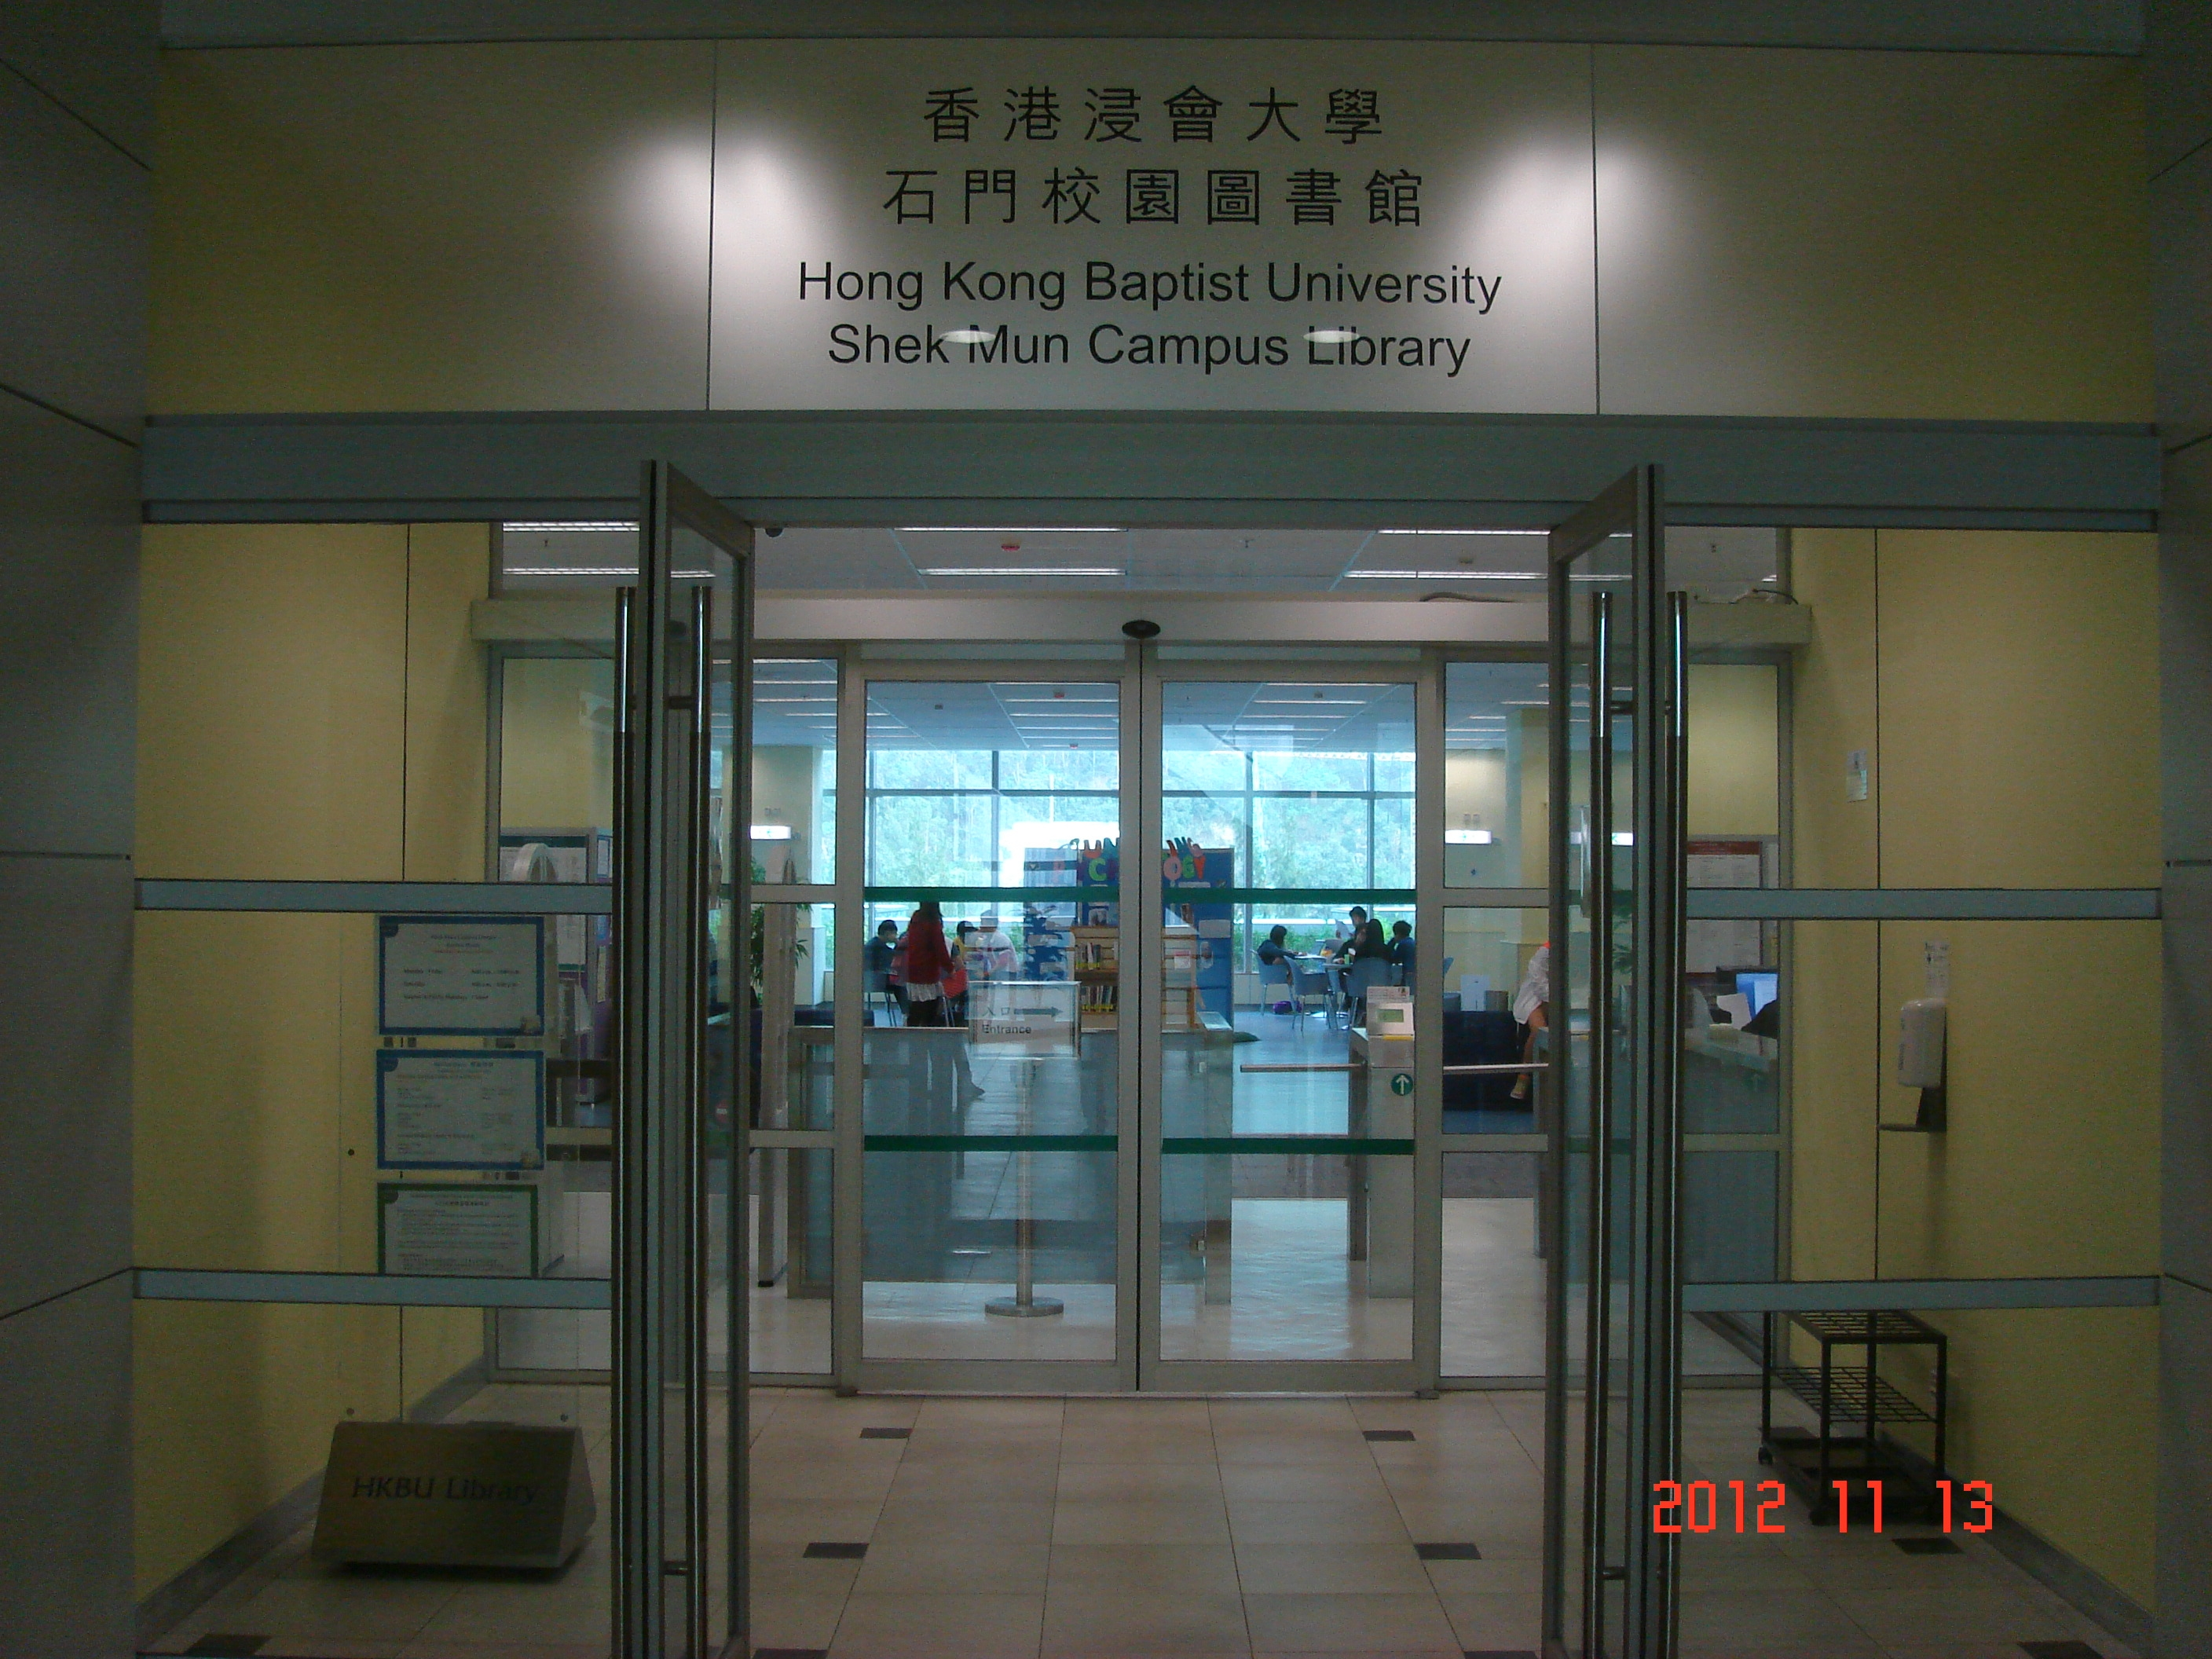 Shek Mun Campus Library - Entrance